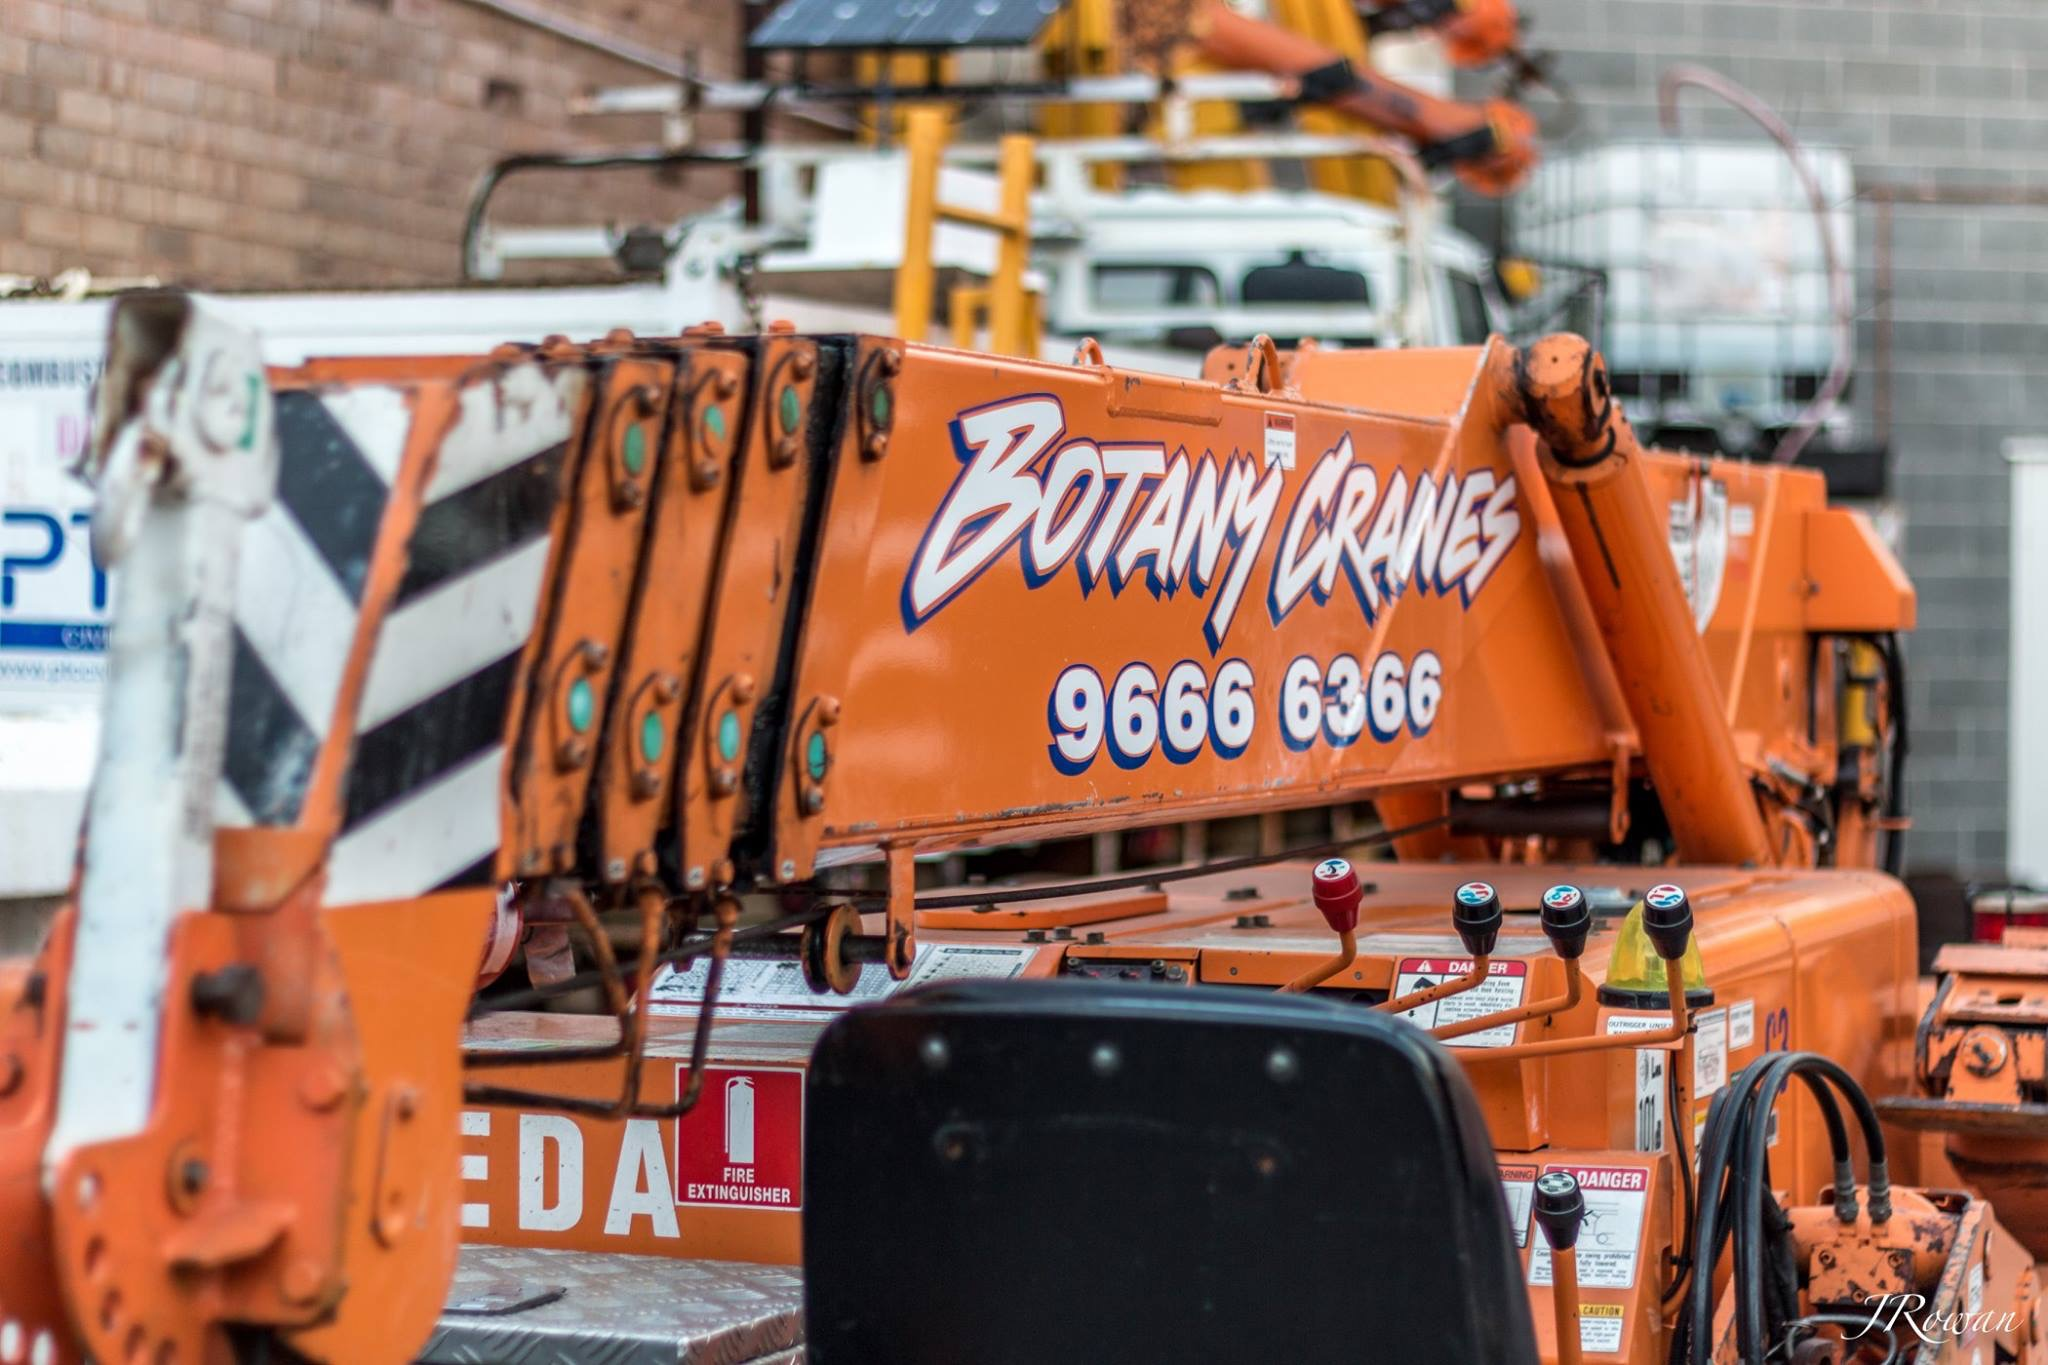 Botany Cranes Logo on Crane Fleet